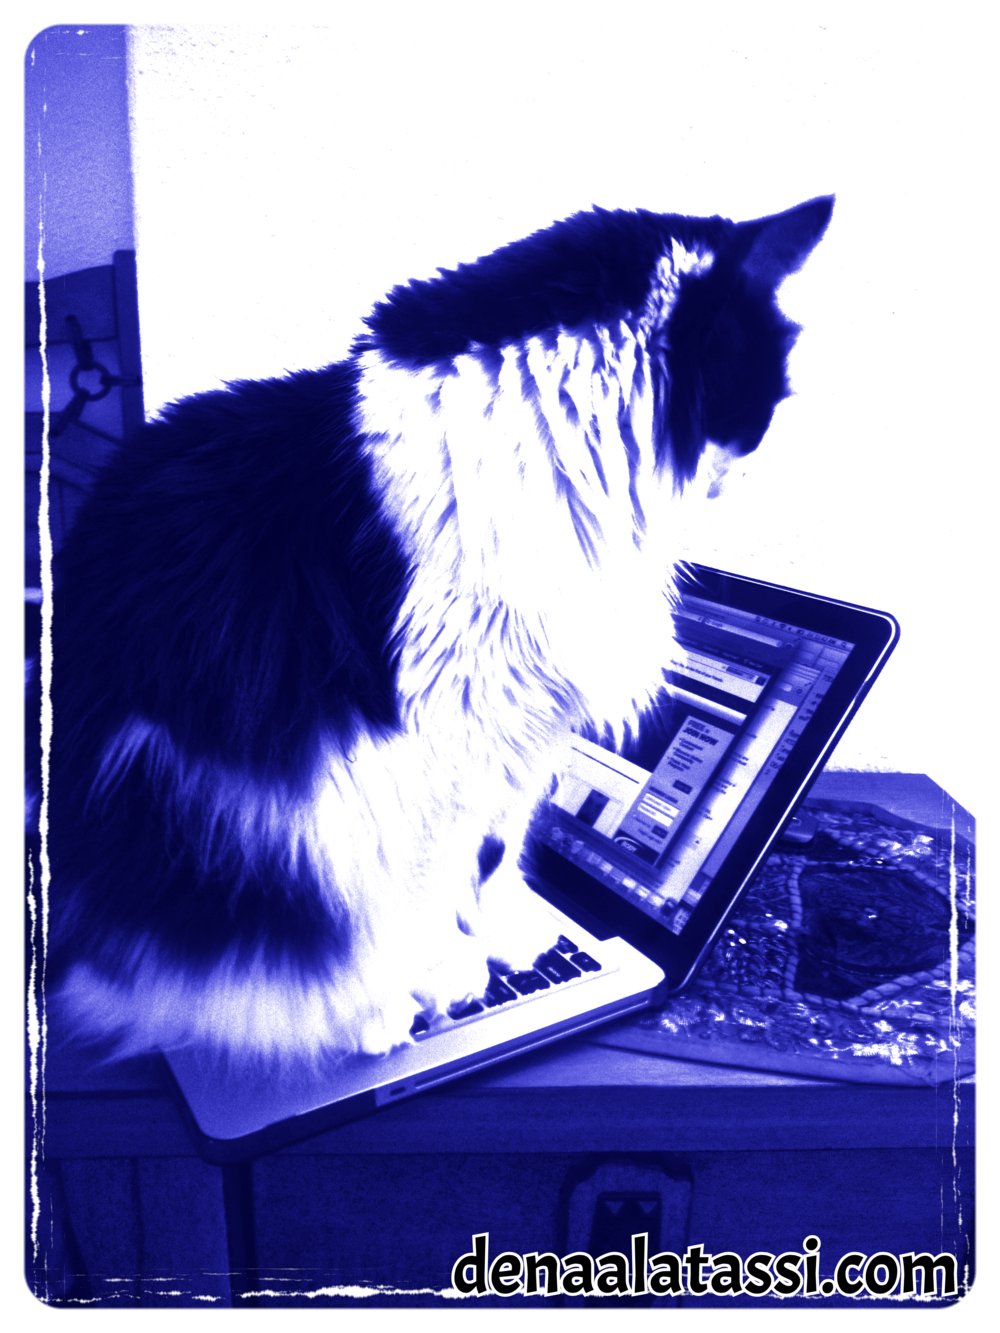 Suzie Diligently Monitoring the Computer! ~ Riyadh, 2012